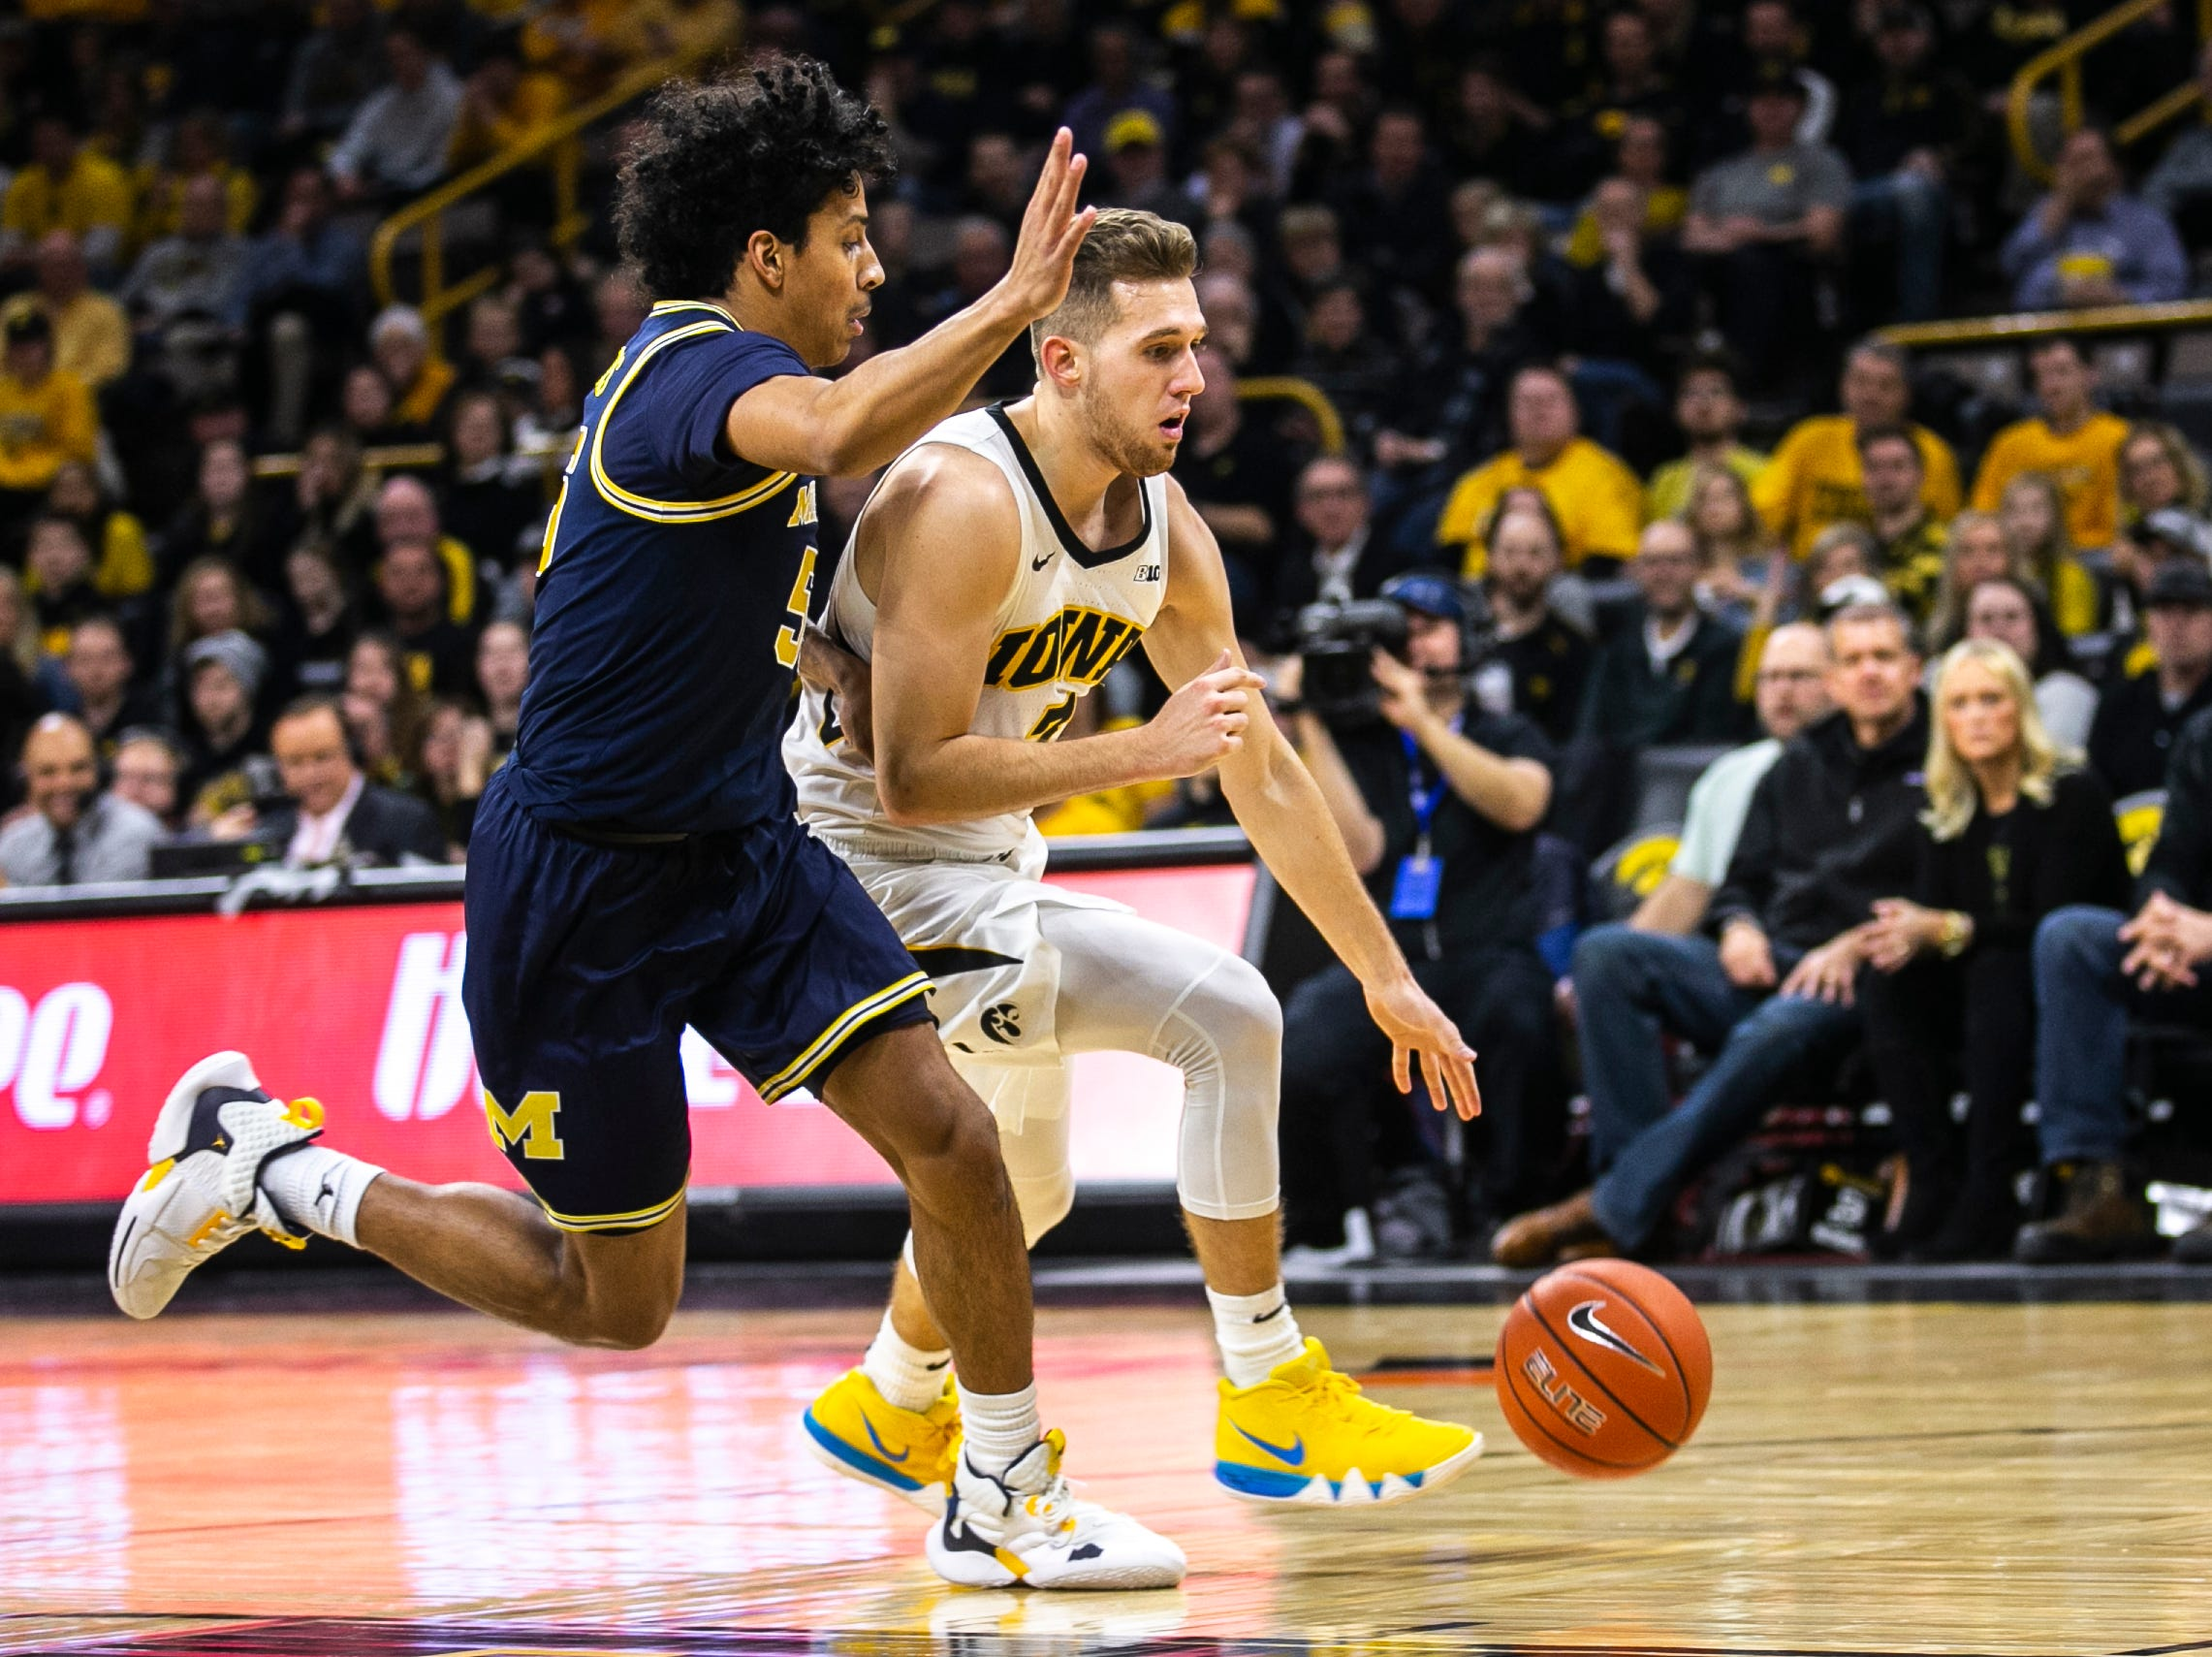 Iowa guard Jordan Bohannon (3) drives to the basket while Michigan guard Eli Brooks (55) defends during a NCAA Big Ten Conference men's basketball game on Friday, Feb. 1, 2019, at Carver-Hawkeye Arena in Iowa City, Iowa.